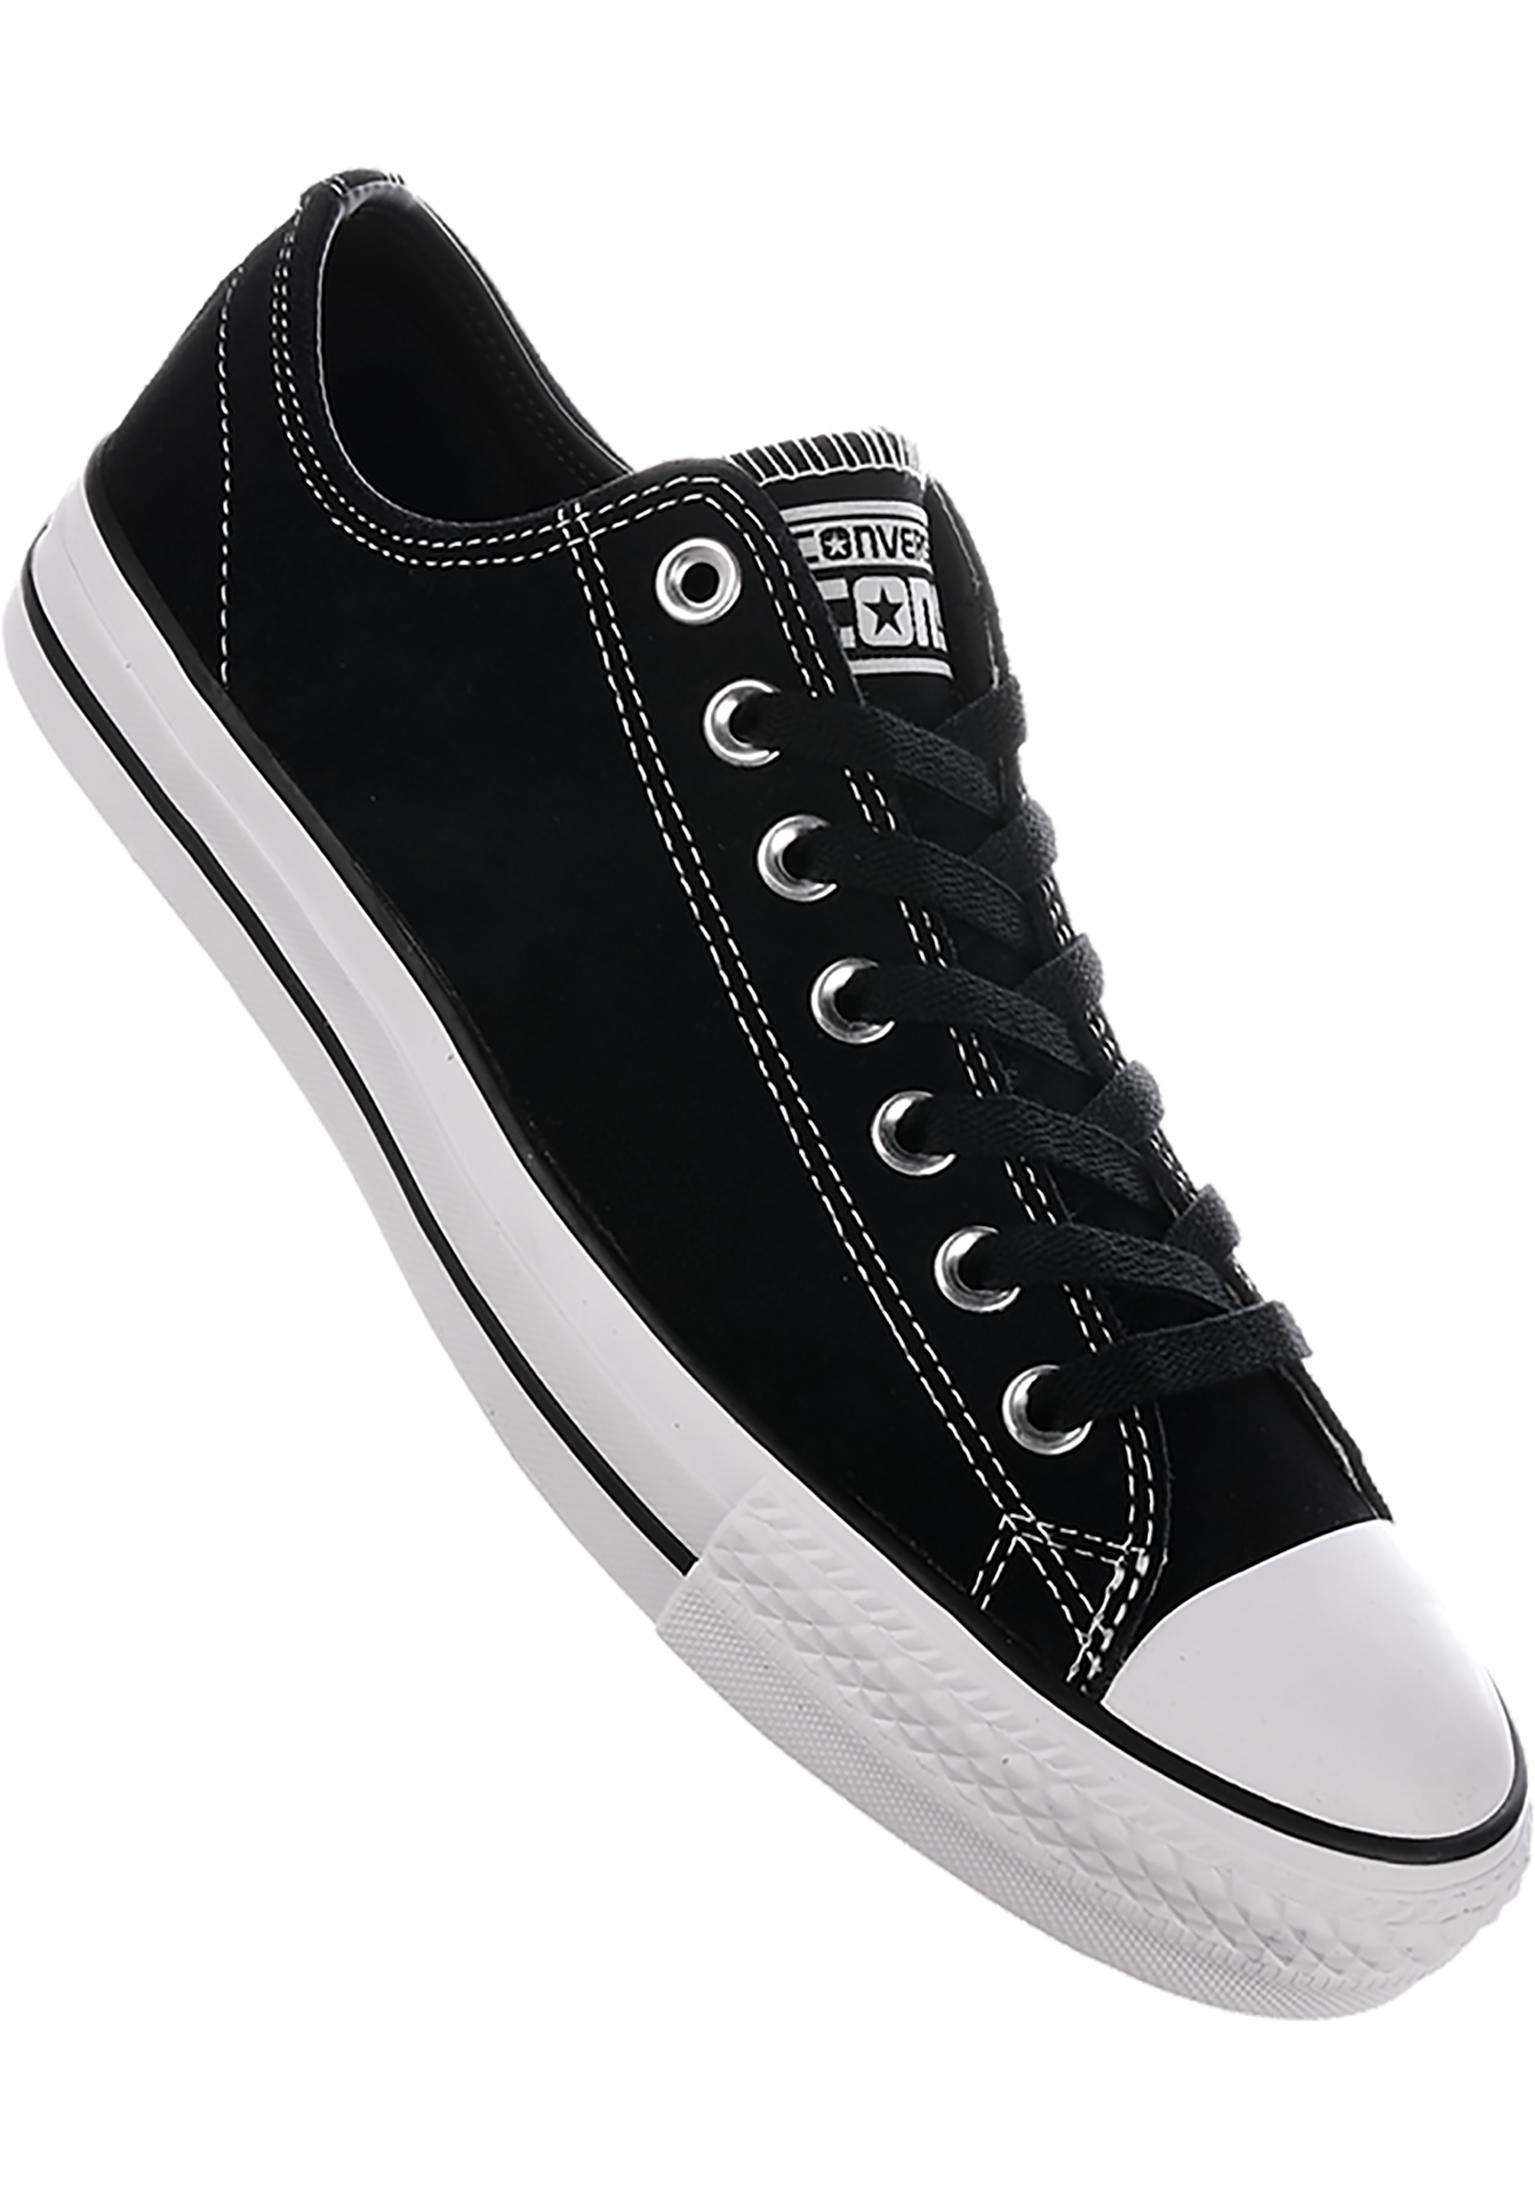 70729b315bc0 CTAS Pro Suede Ox Converse CONS All Shoes in black-black-white for Men